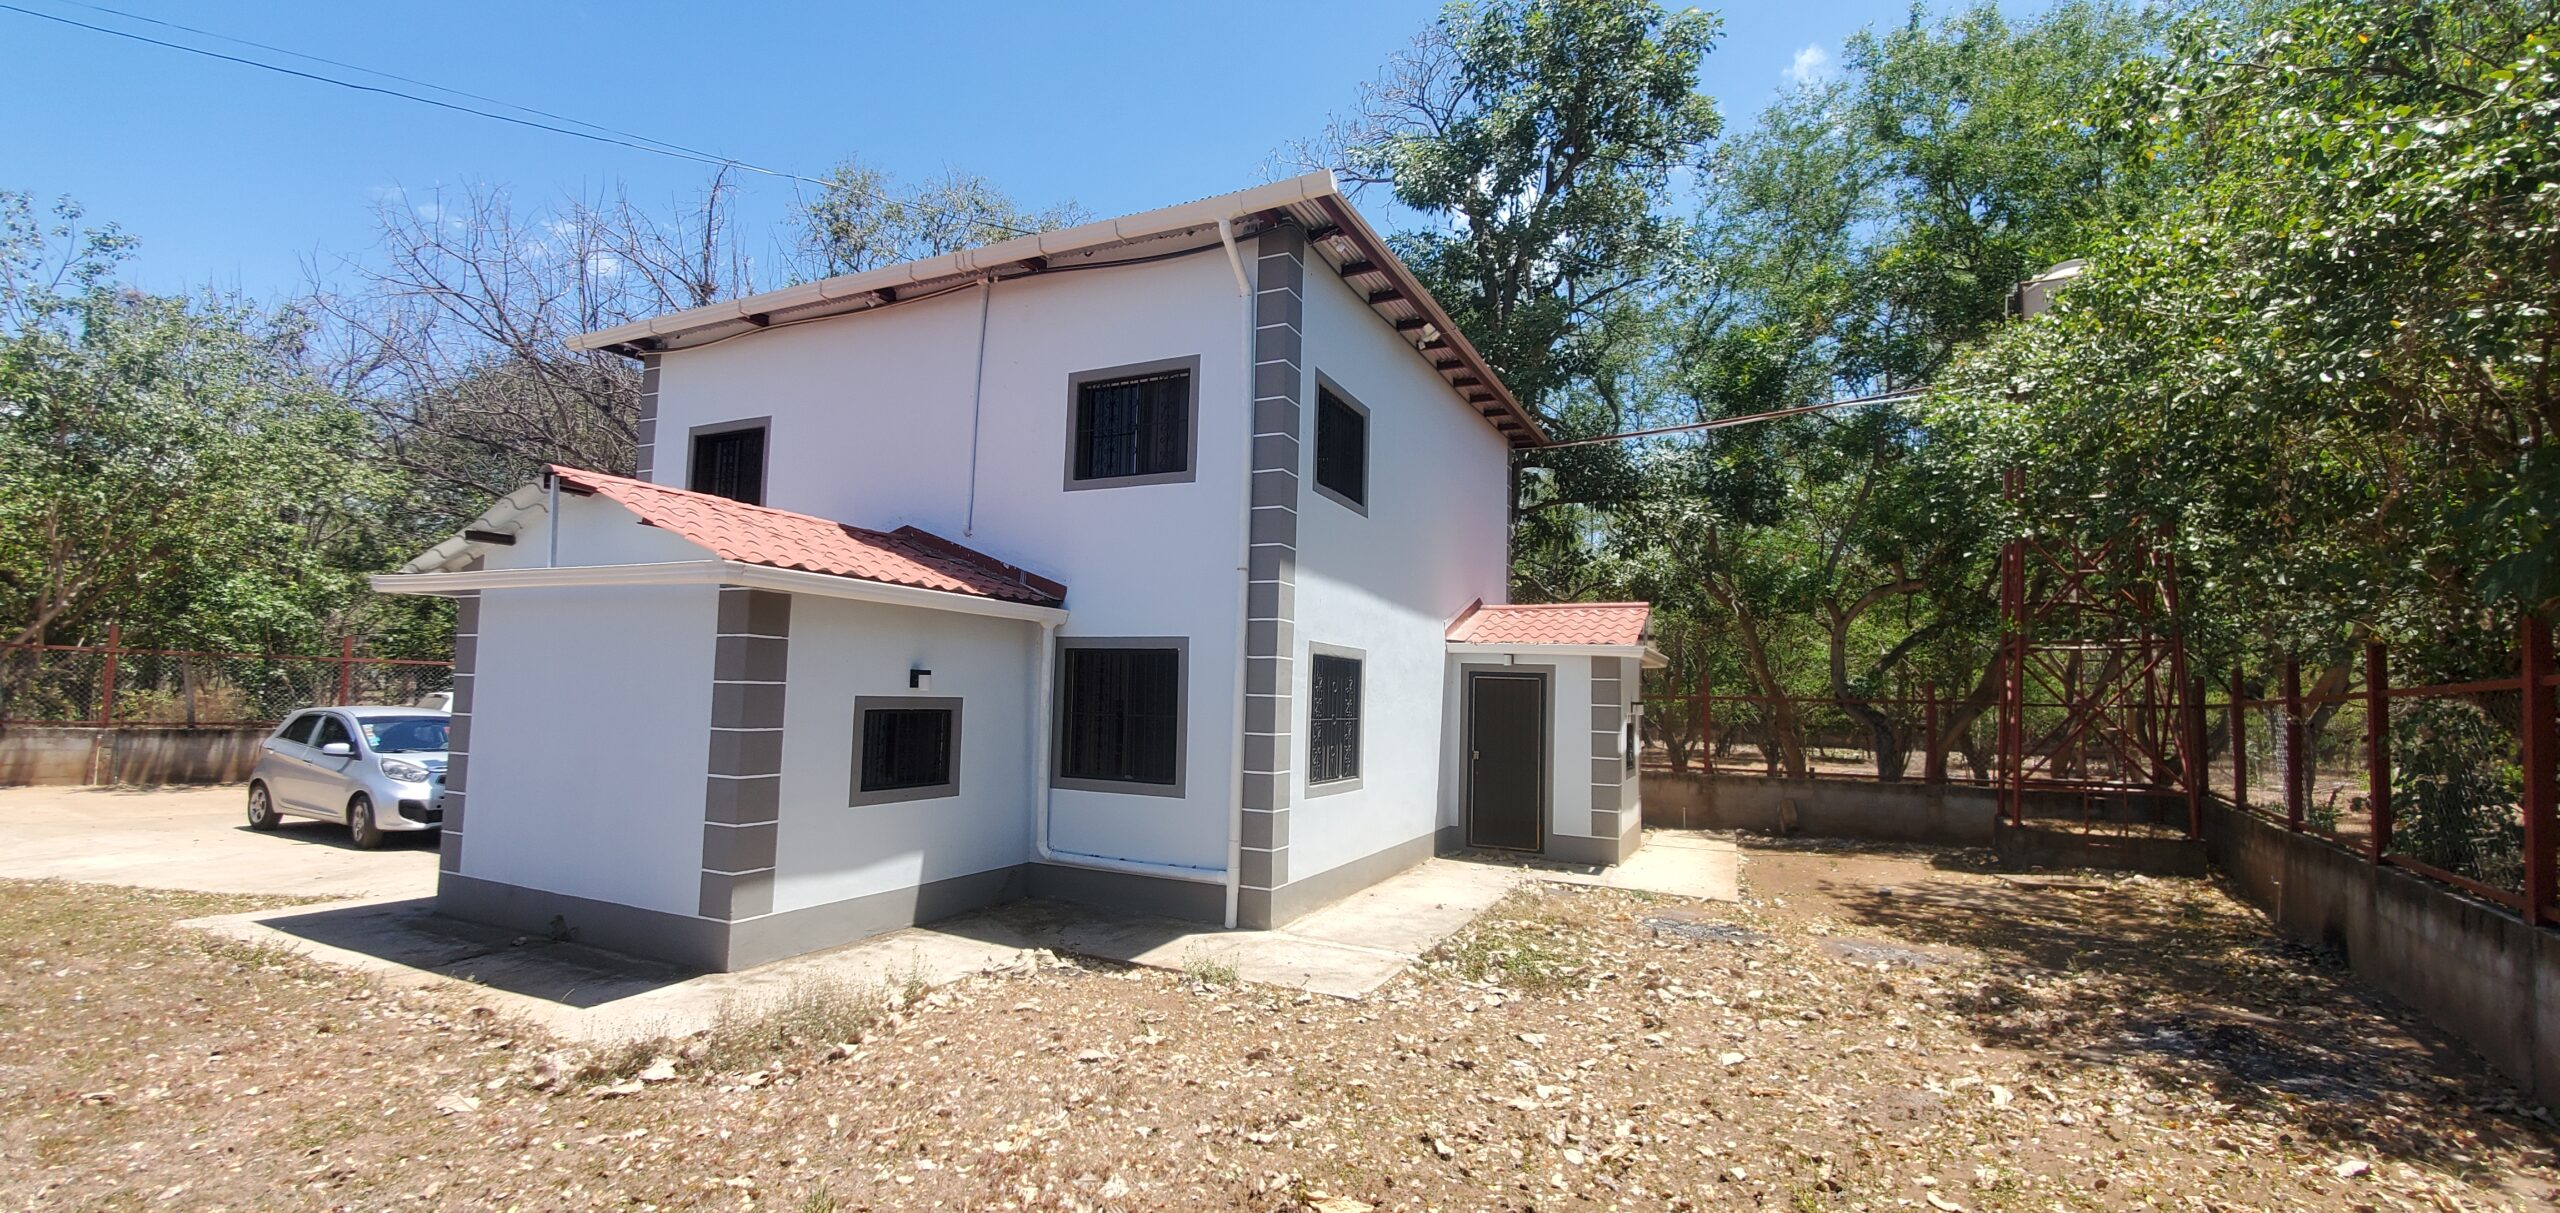 For sale, brand new home minutes from Granada $120000